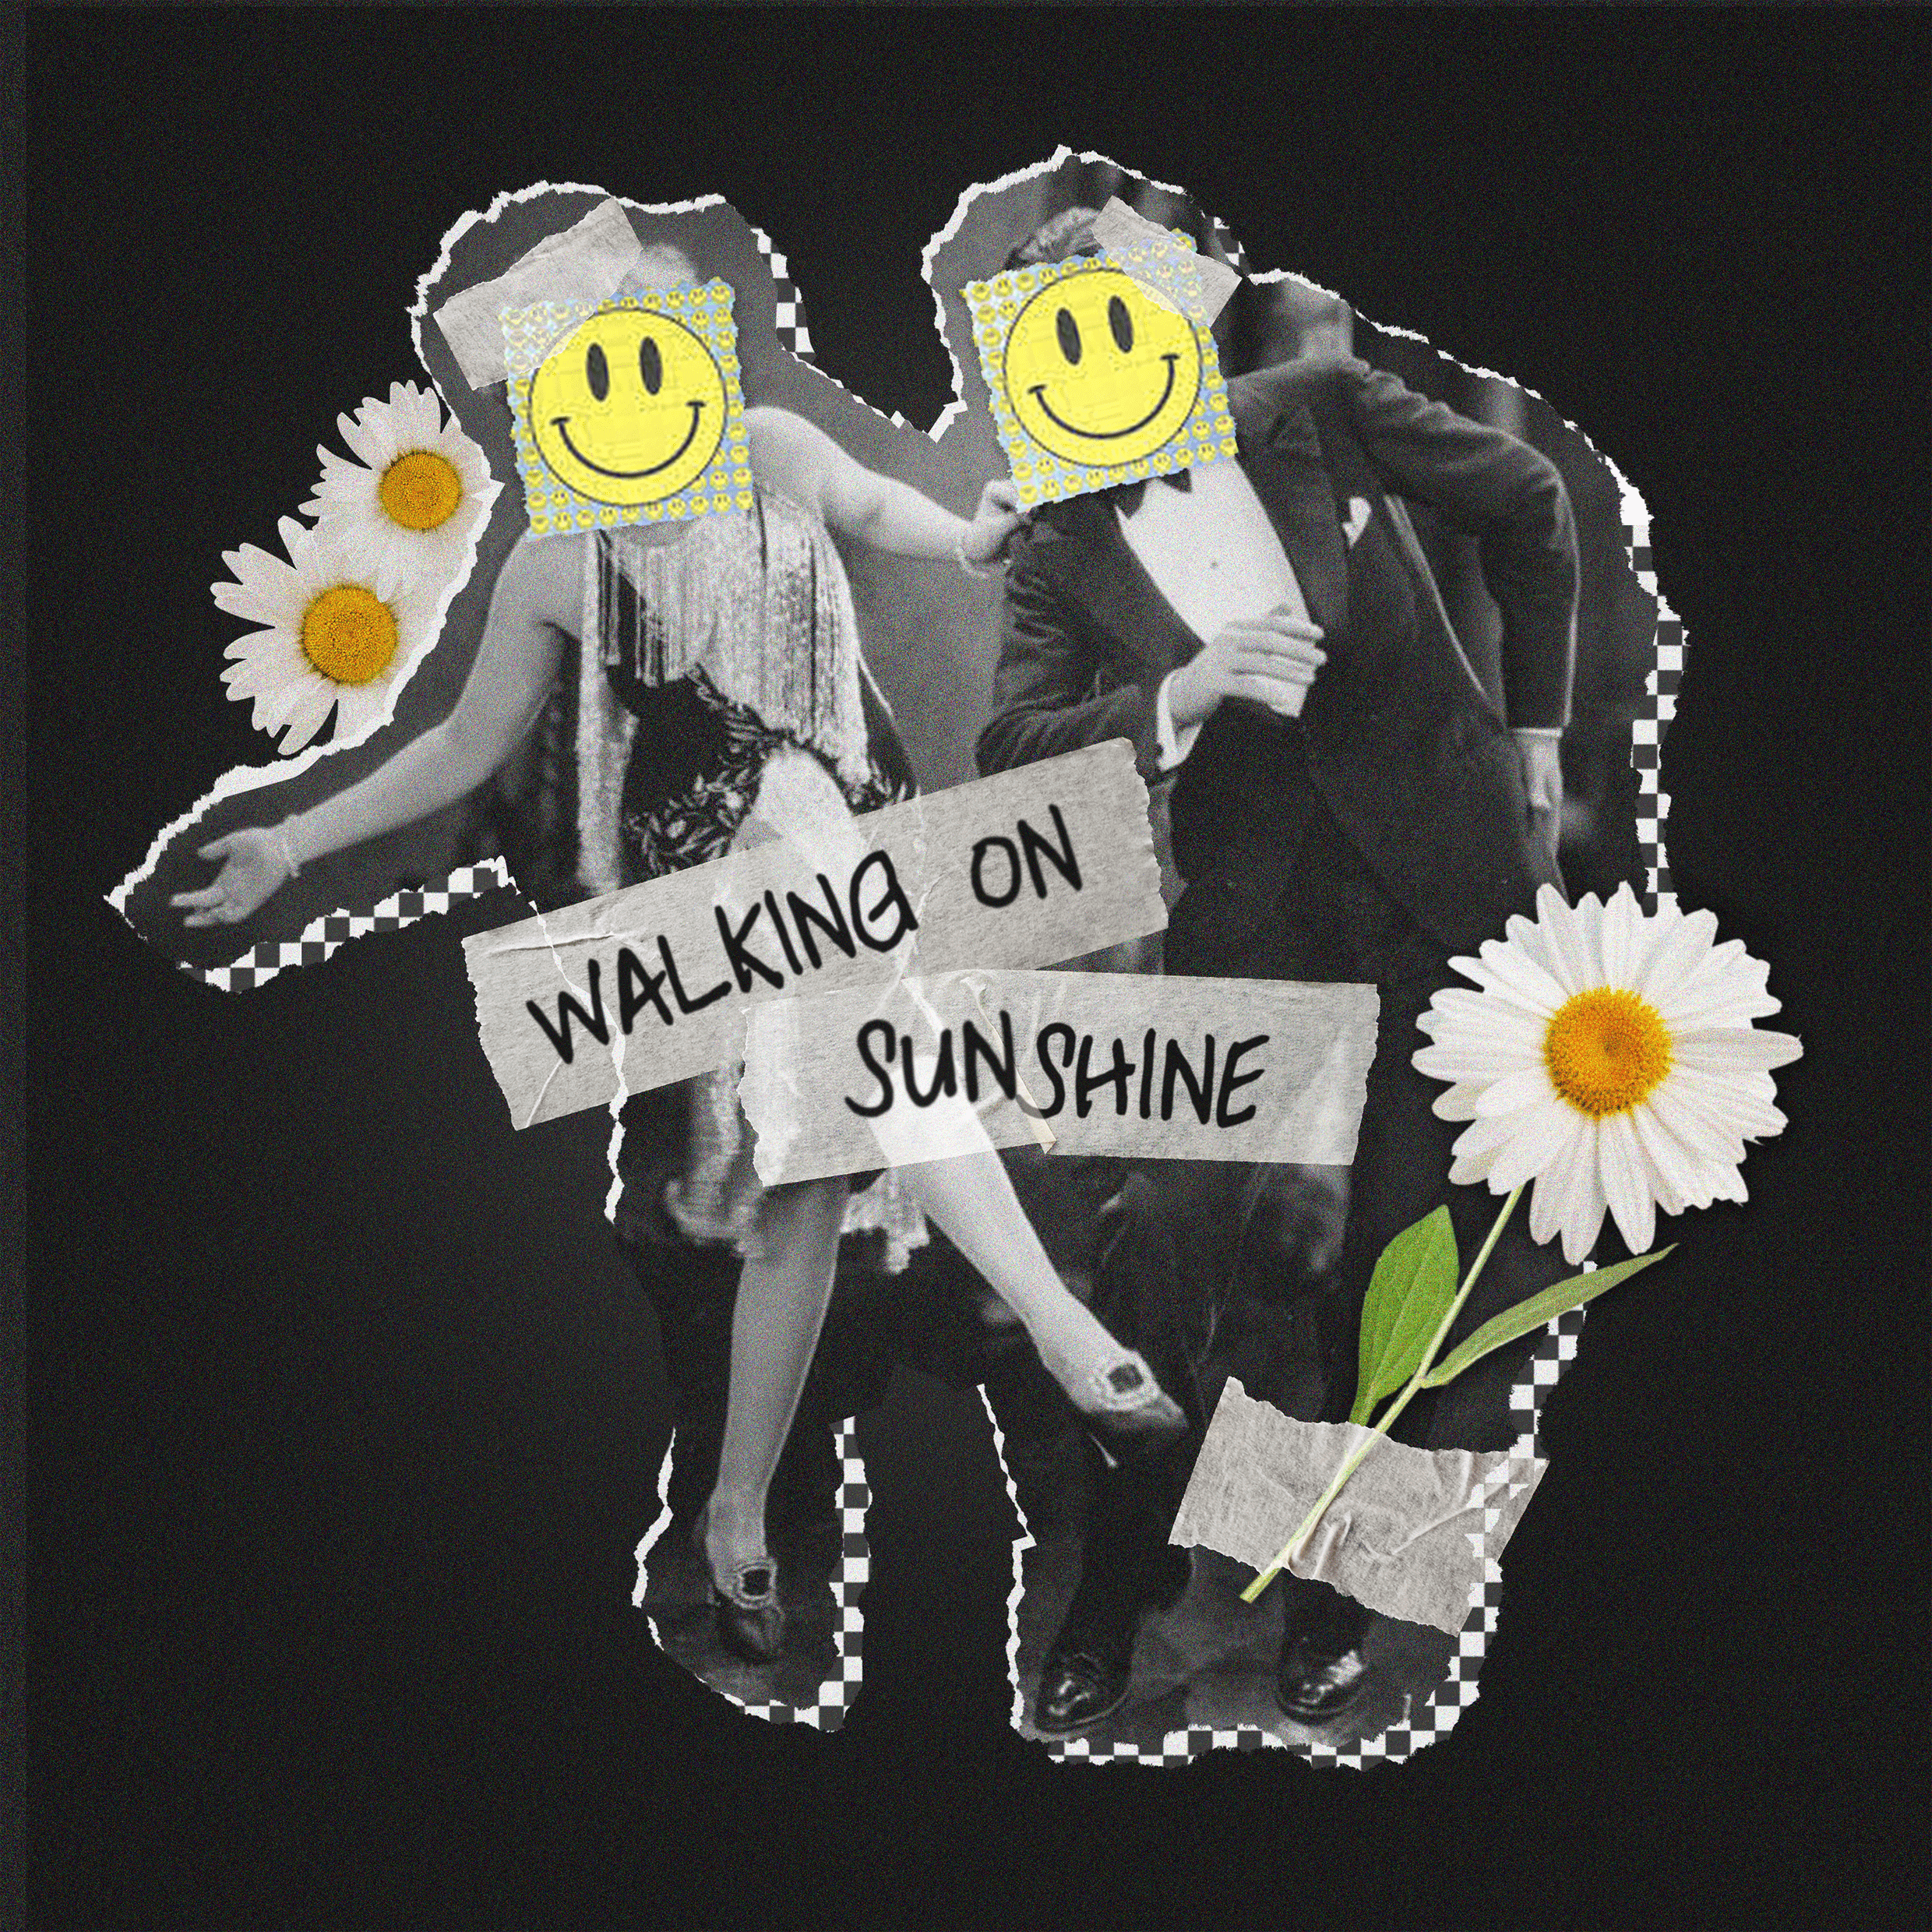 WALKINGONSUNSHINE (1)-min.png